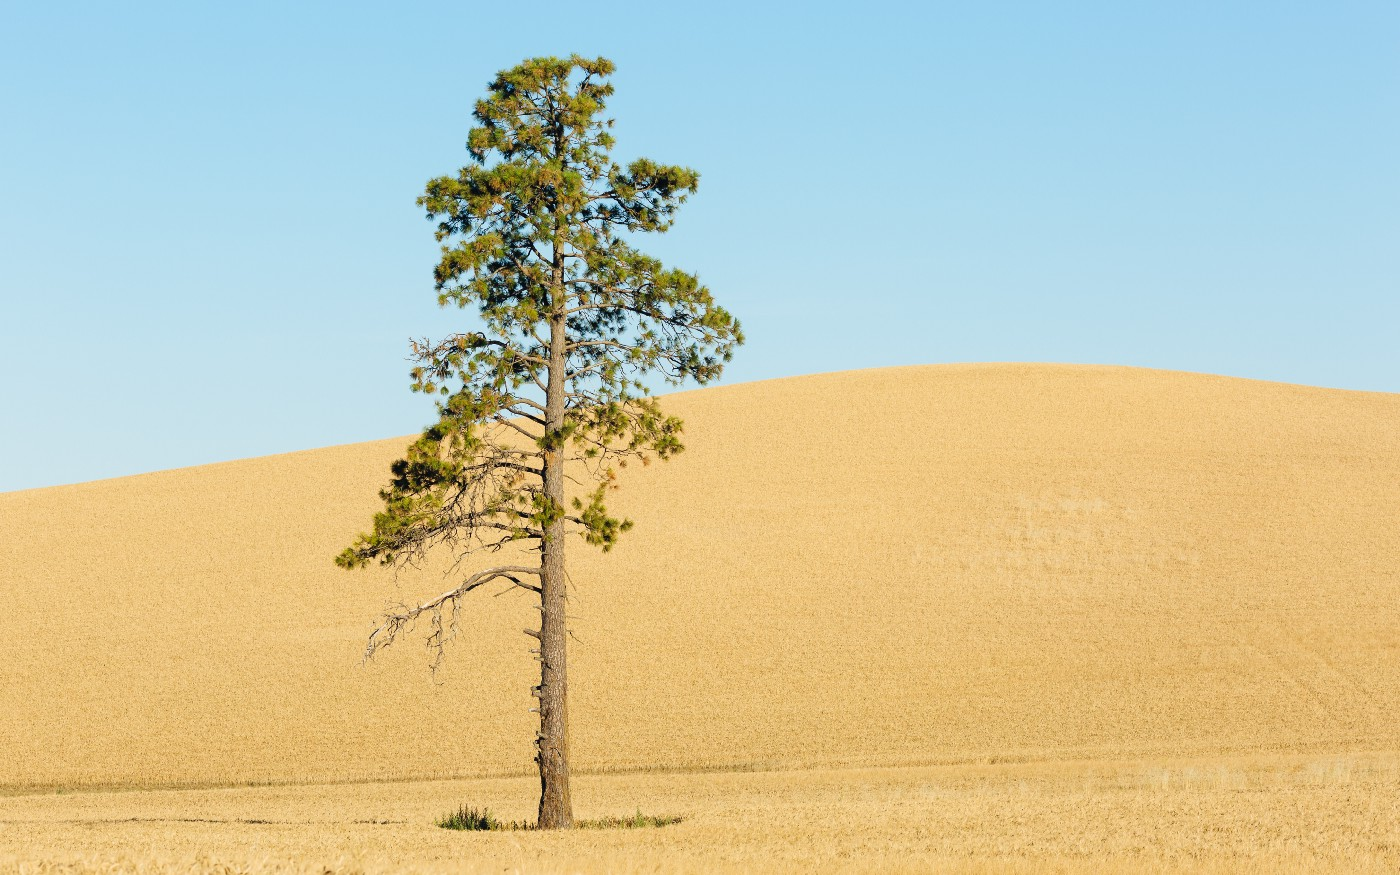 A tree standing alone in a yellow field